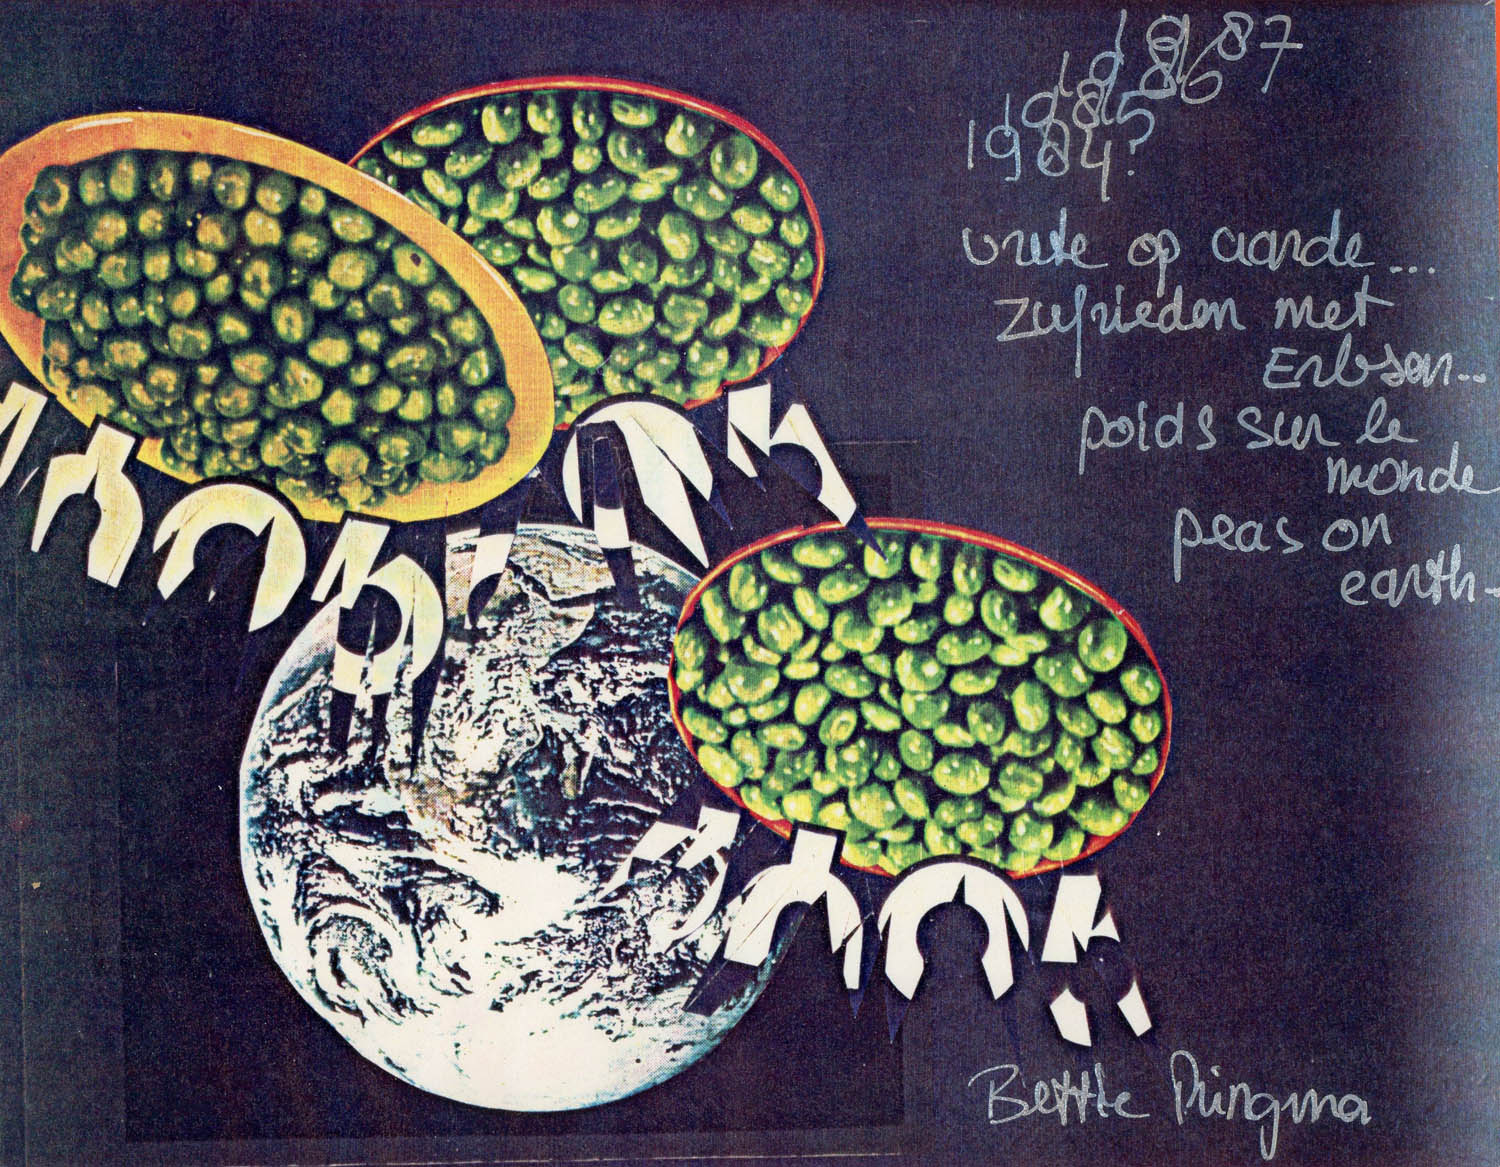 """Peas on Earth"", Color Xerox Collage, 1980"